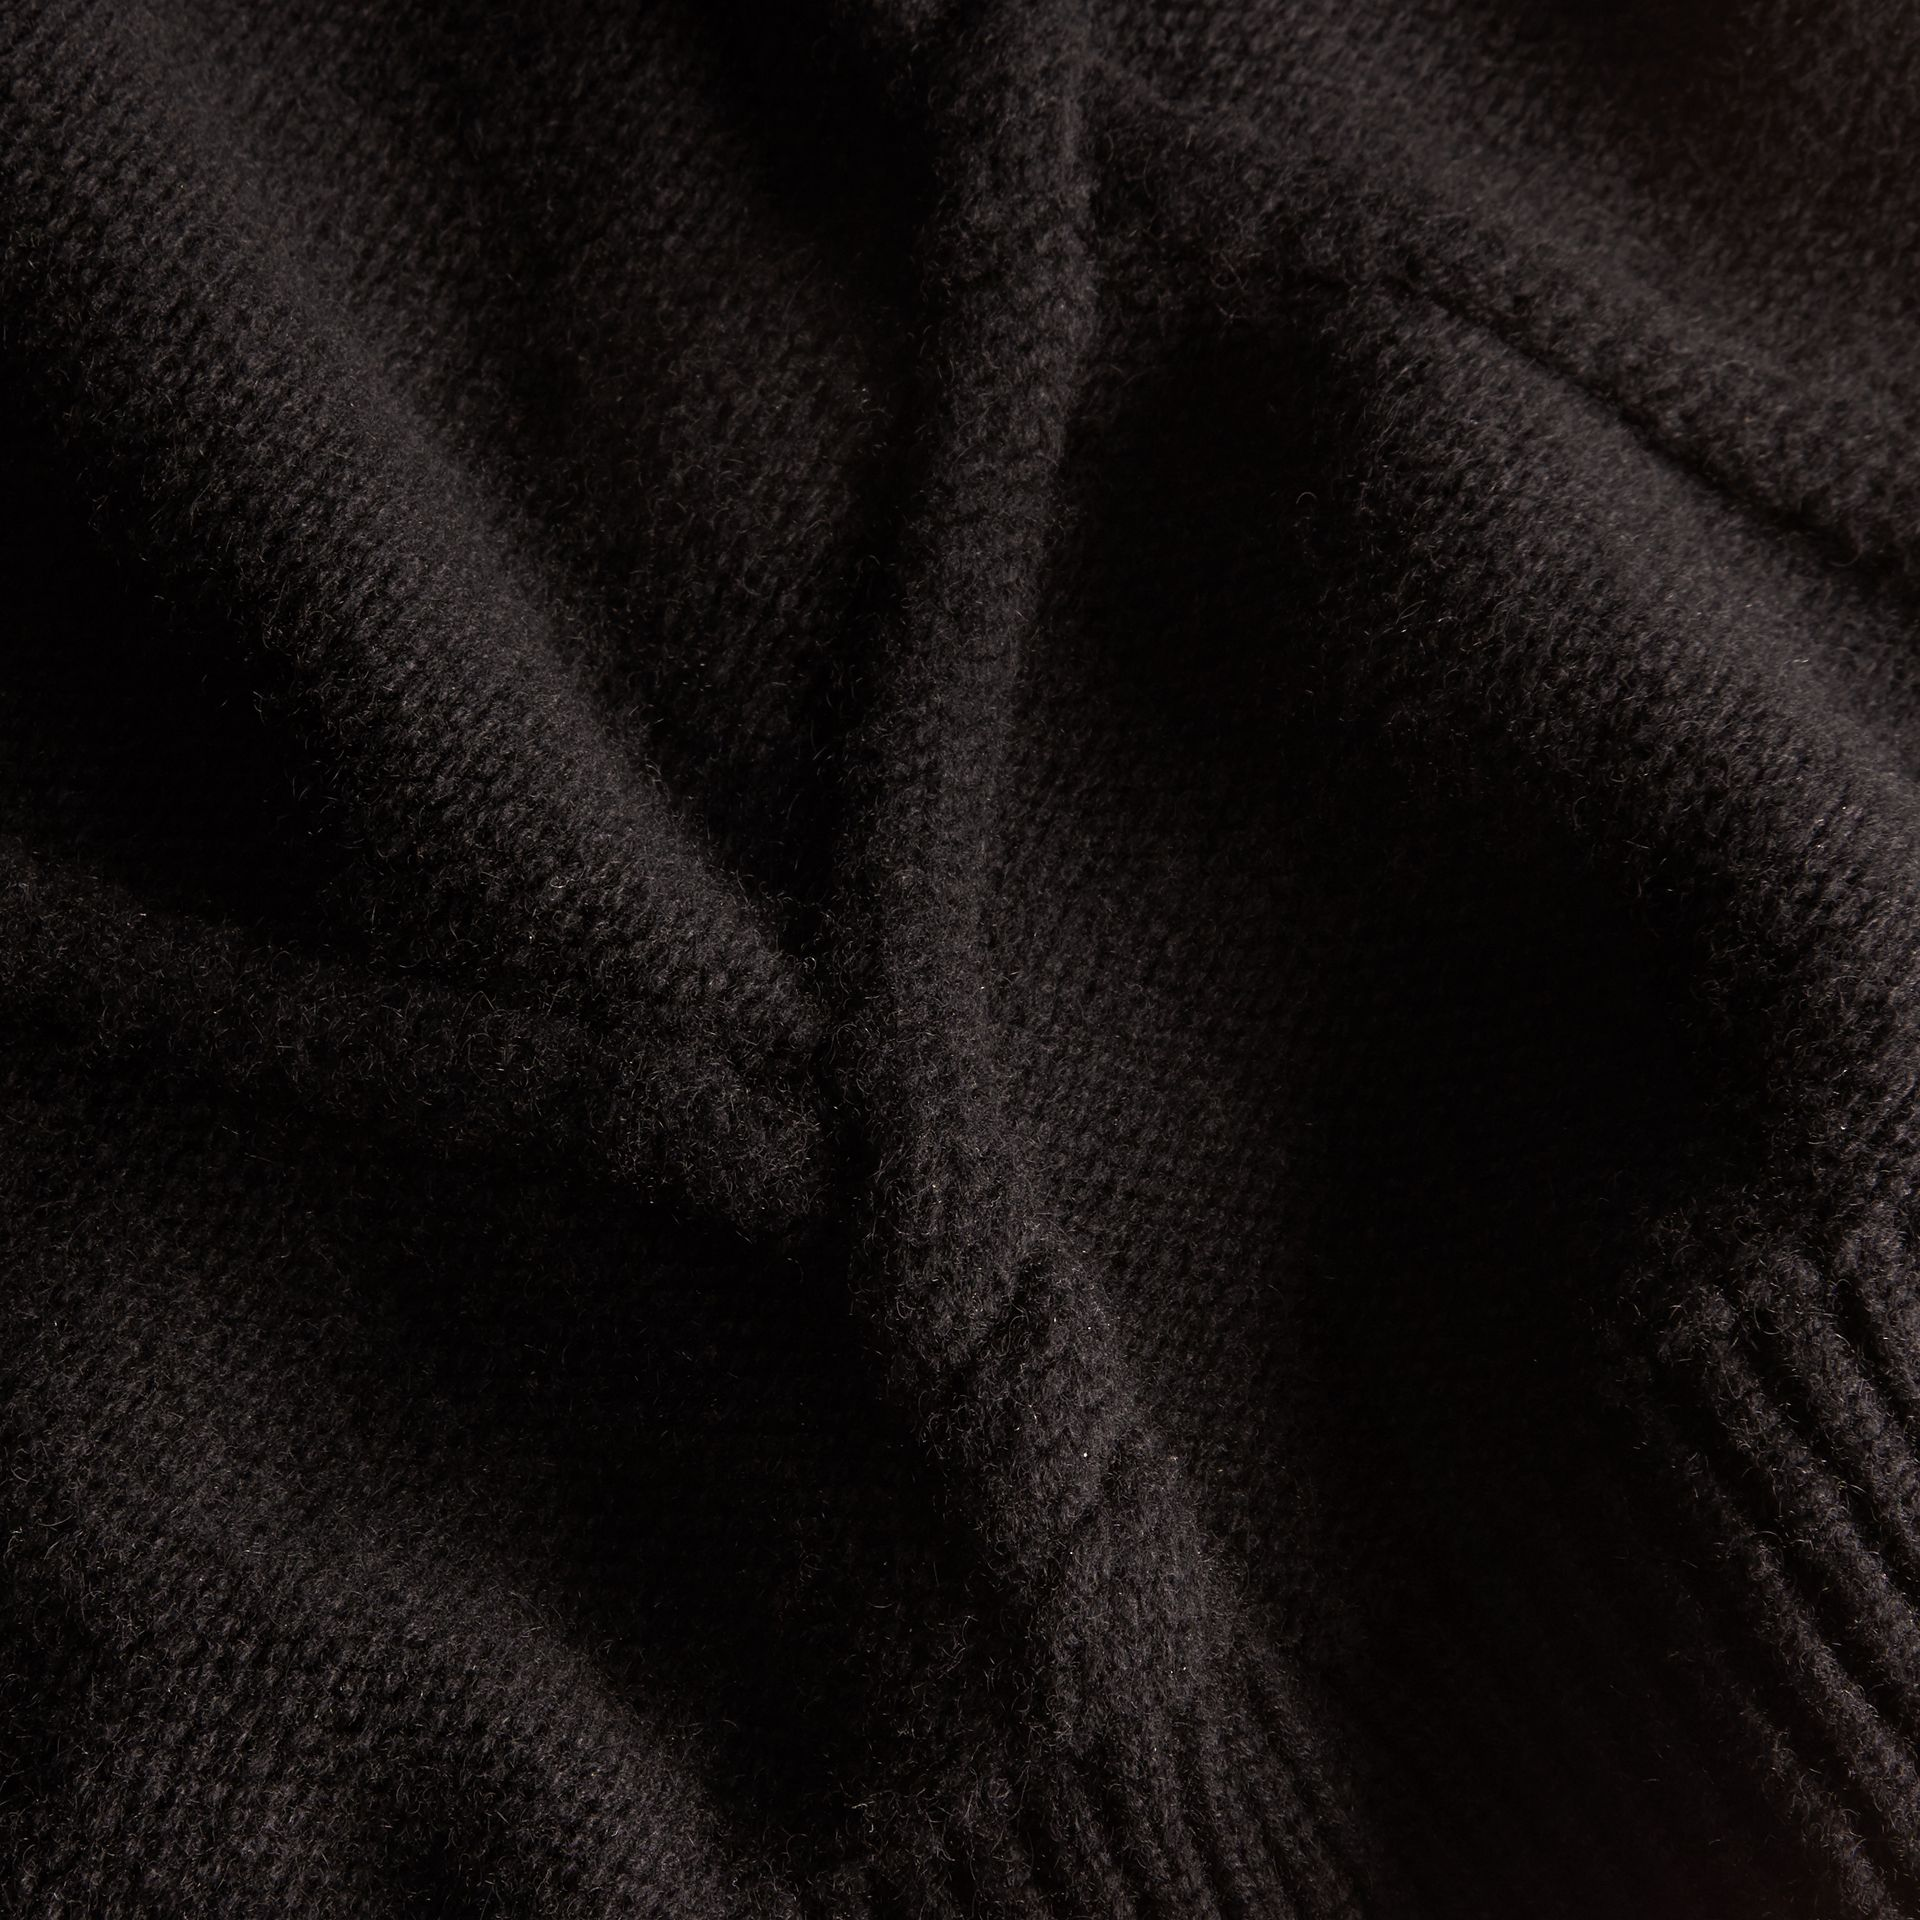 Cable Knit Wool Cashmere Sweater with Ruffle Bell Sleeves in Black - gallery image 2